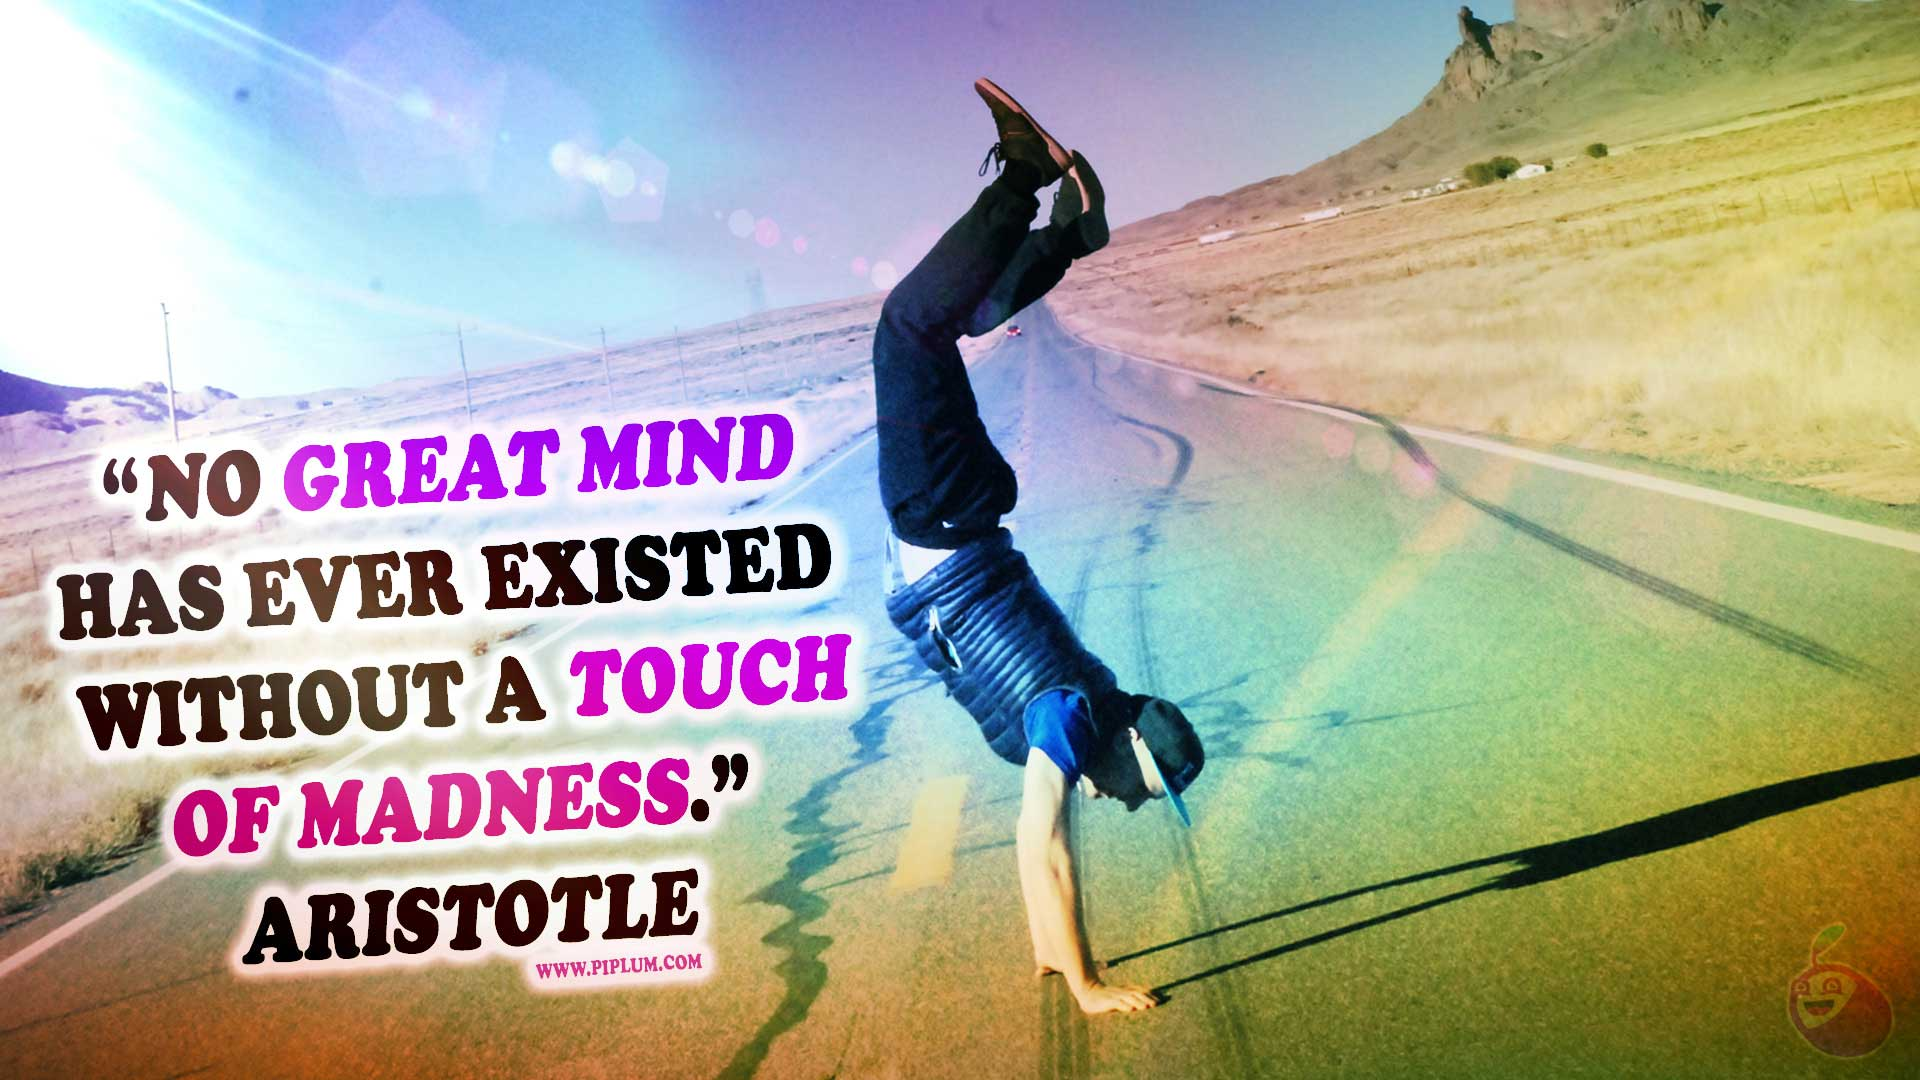 Moivational Quote. A-touch-of-madness